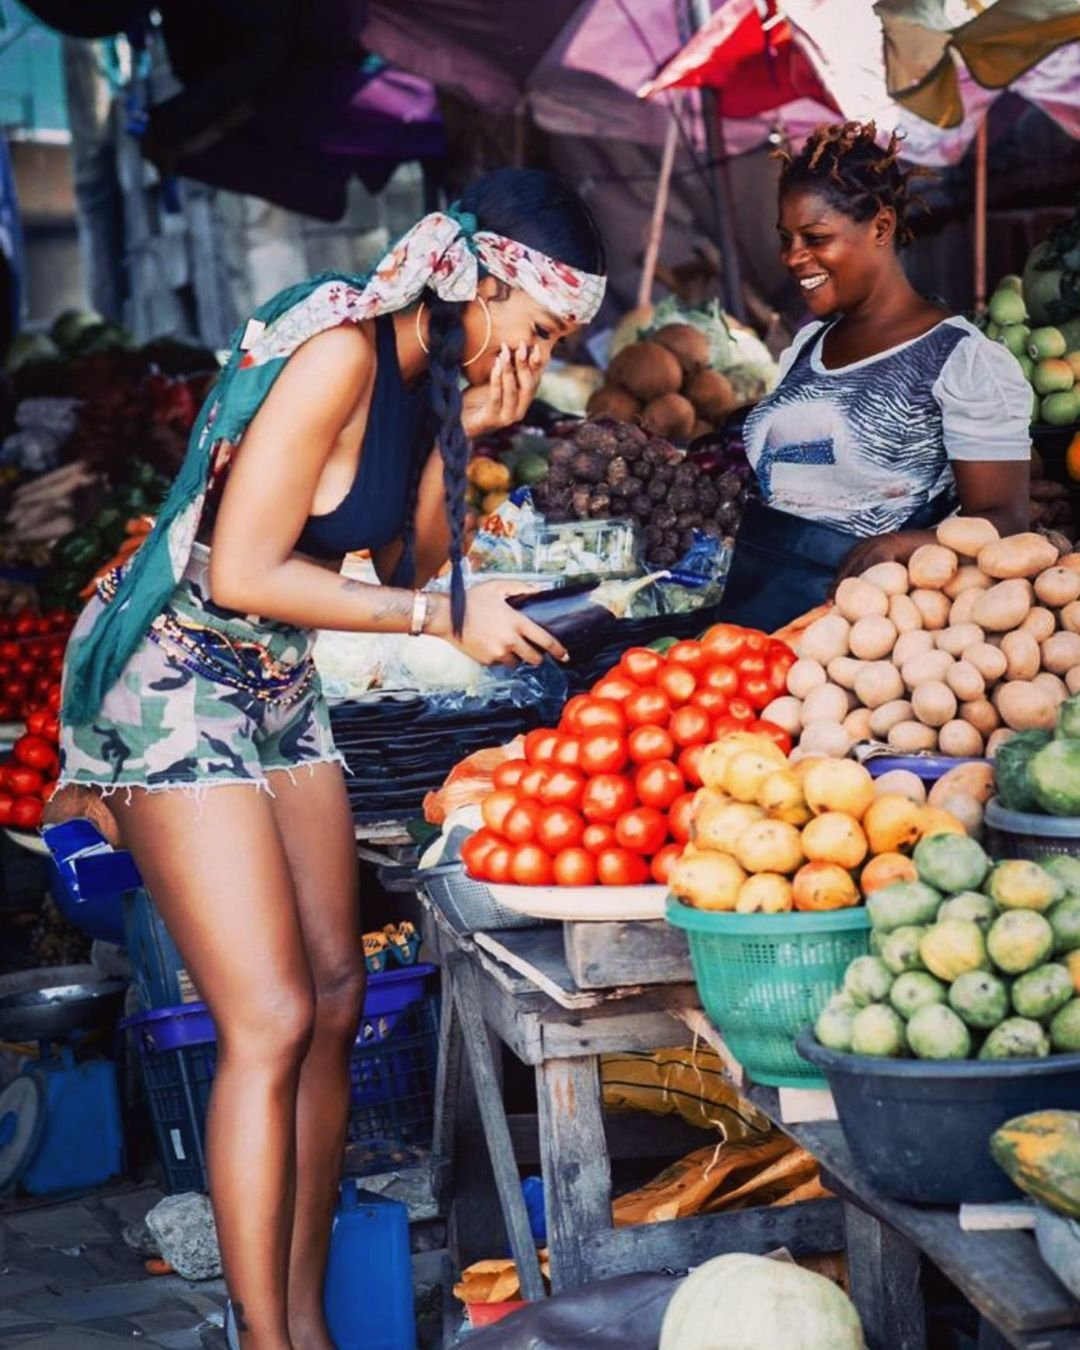 Tiwa Savage's Market Photos Are Definitely Picture Goals